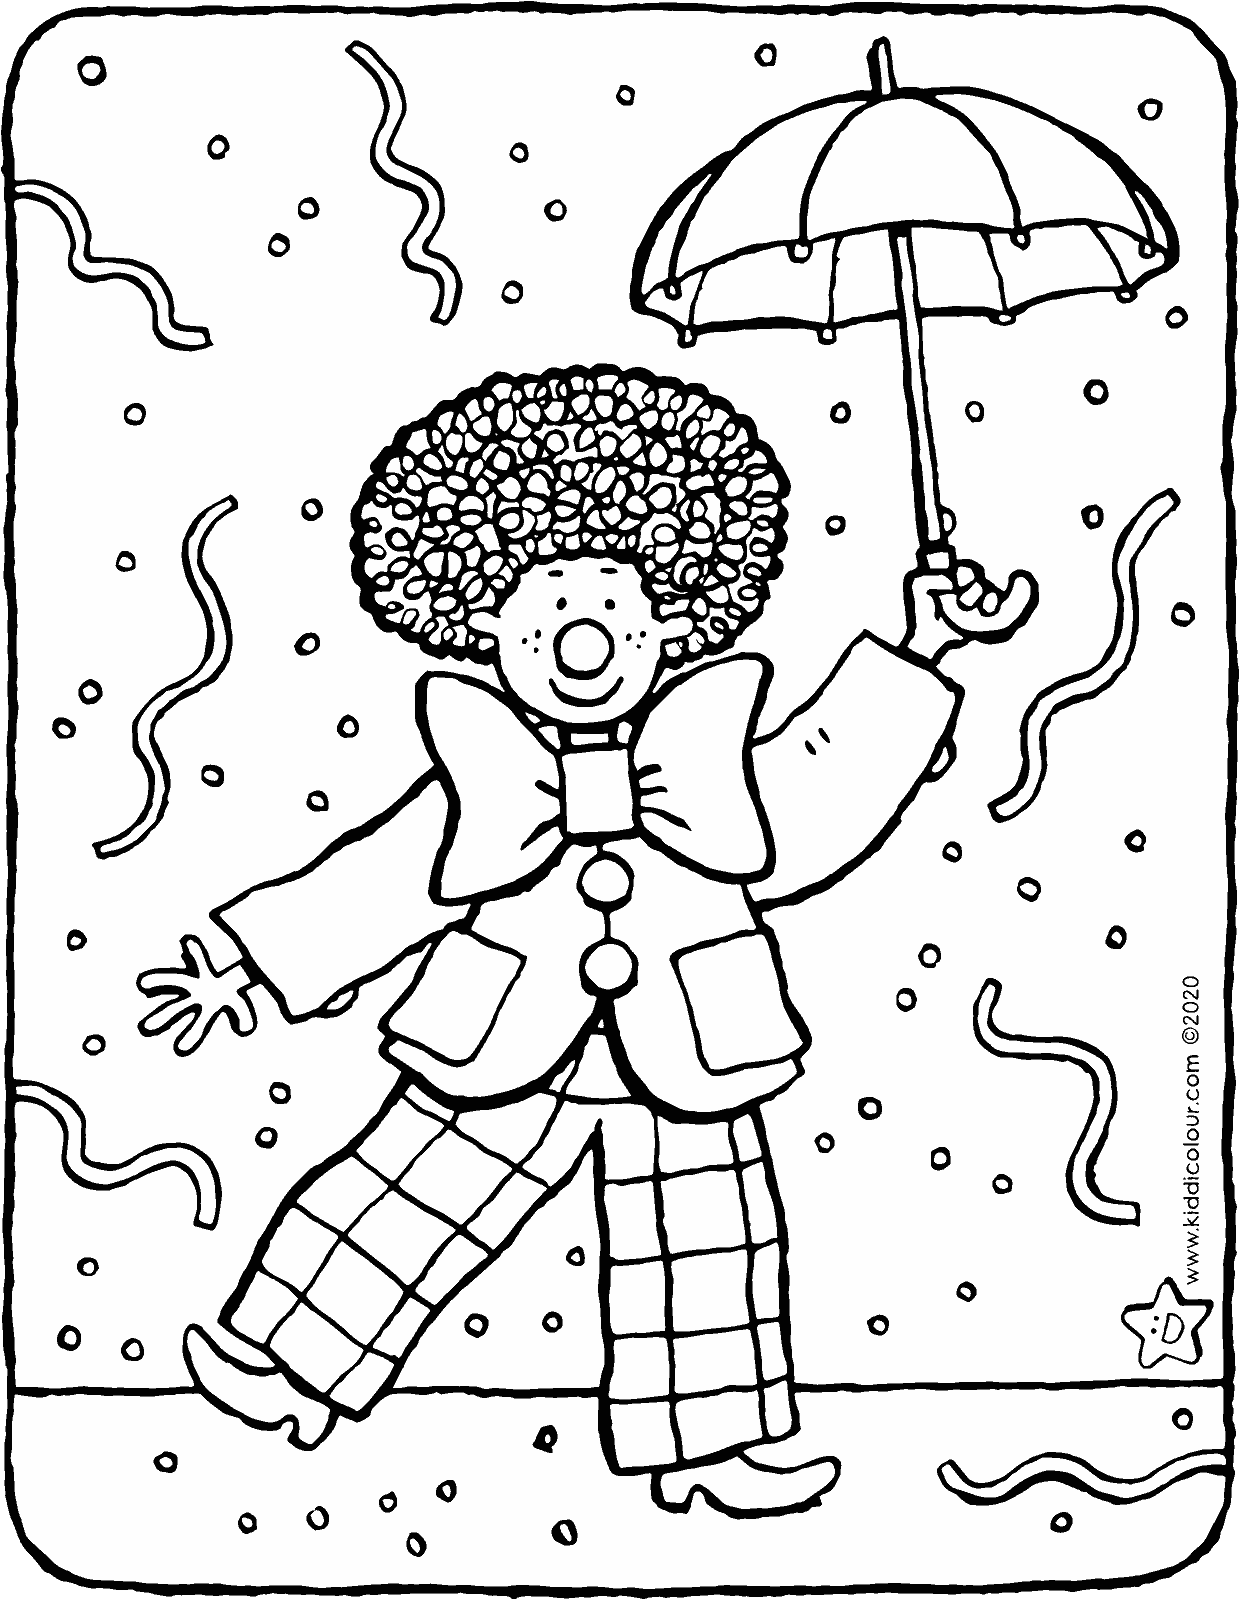 dressed up as a clown for carnival colouring page drawing picture 01V